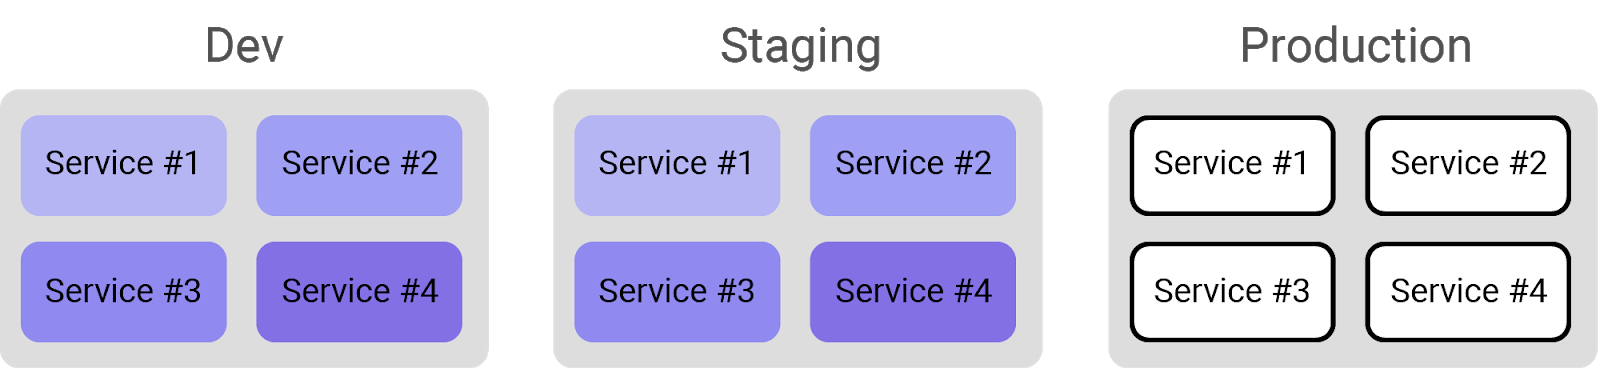 Dev Staging Production